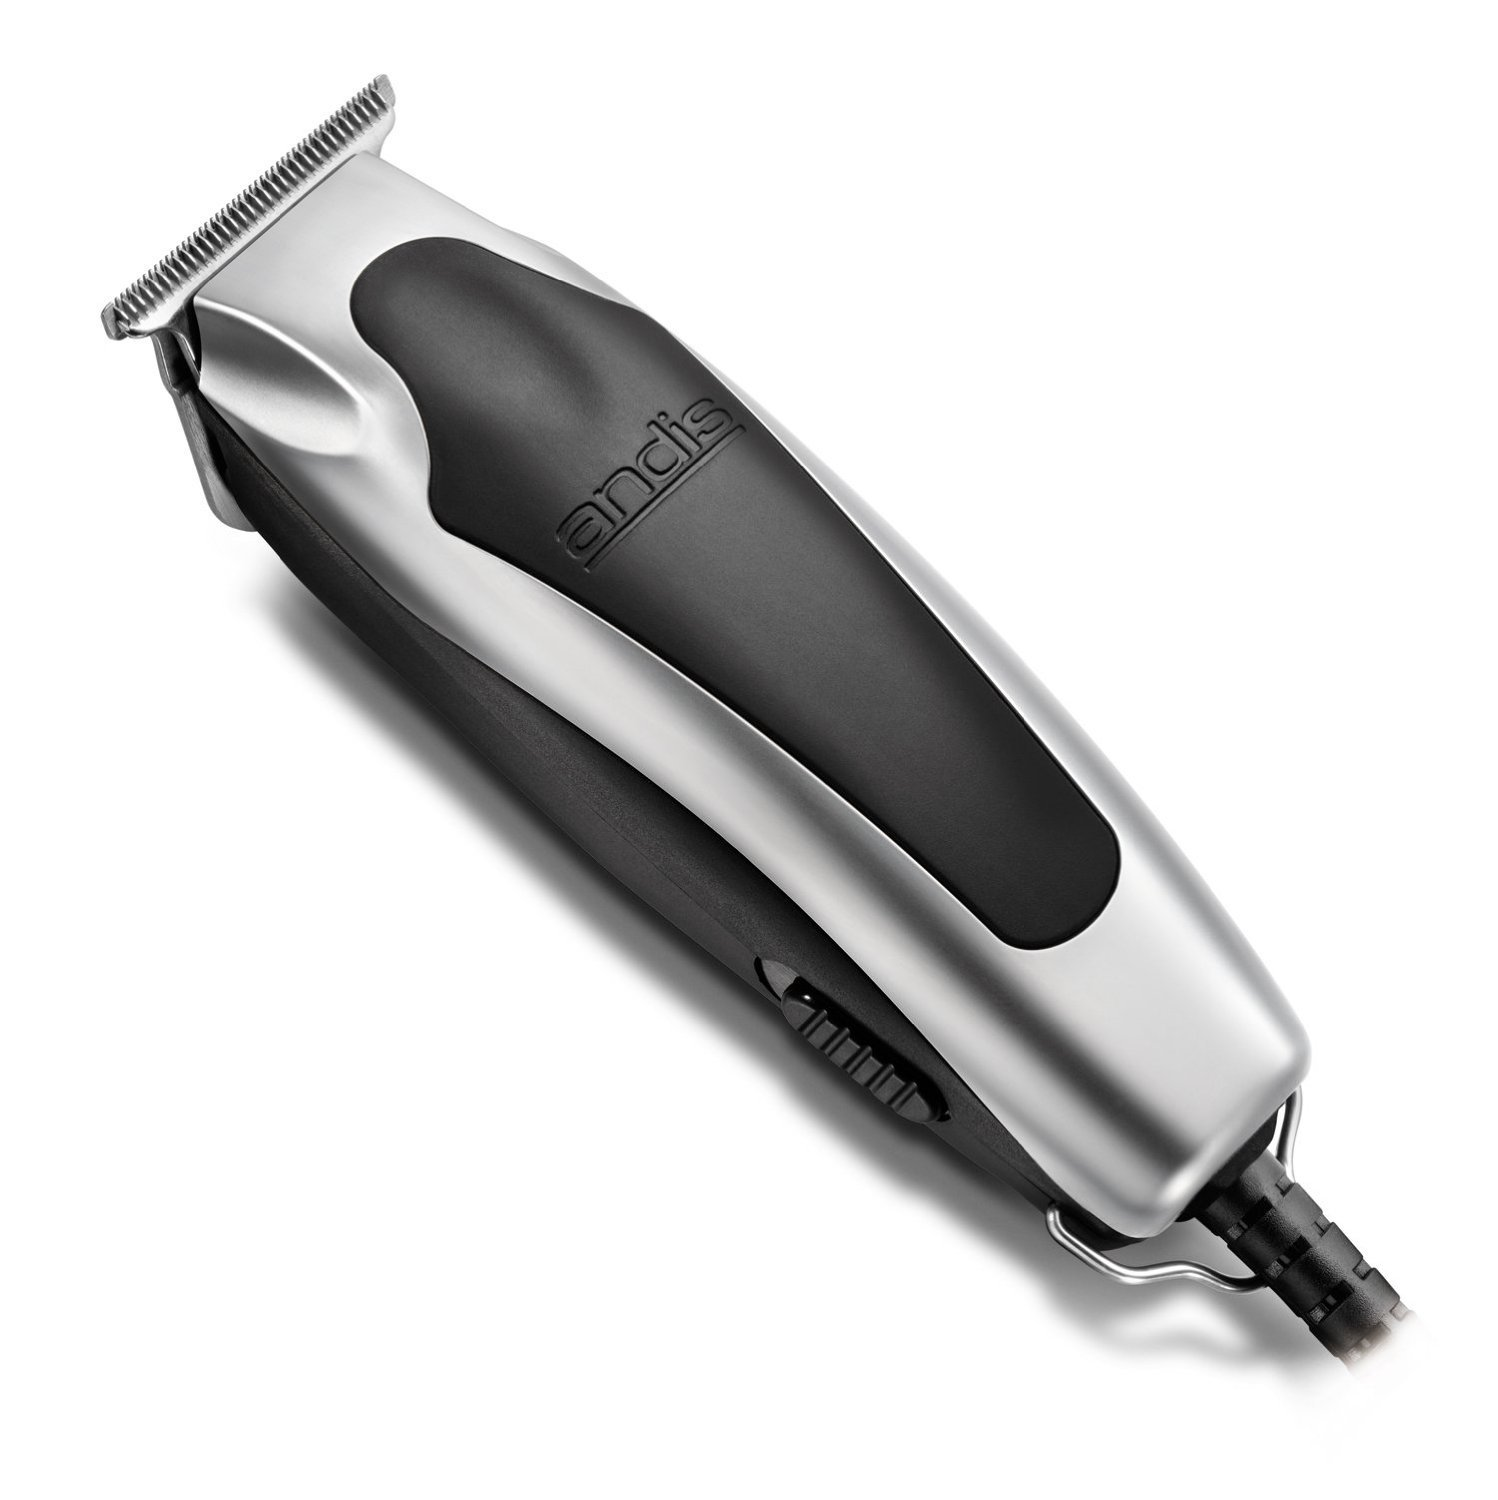 Andis Superline Professional Personal Electric Trimmer with T-Blade for Precision Cutting, Features Detachable Blades and Ergonomic Grip, Perfect for Outlining, Detailing, Shaving and Shaping with Extremely Powerful Yet Quiet Rotary Motor